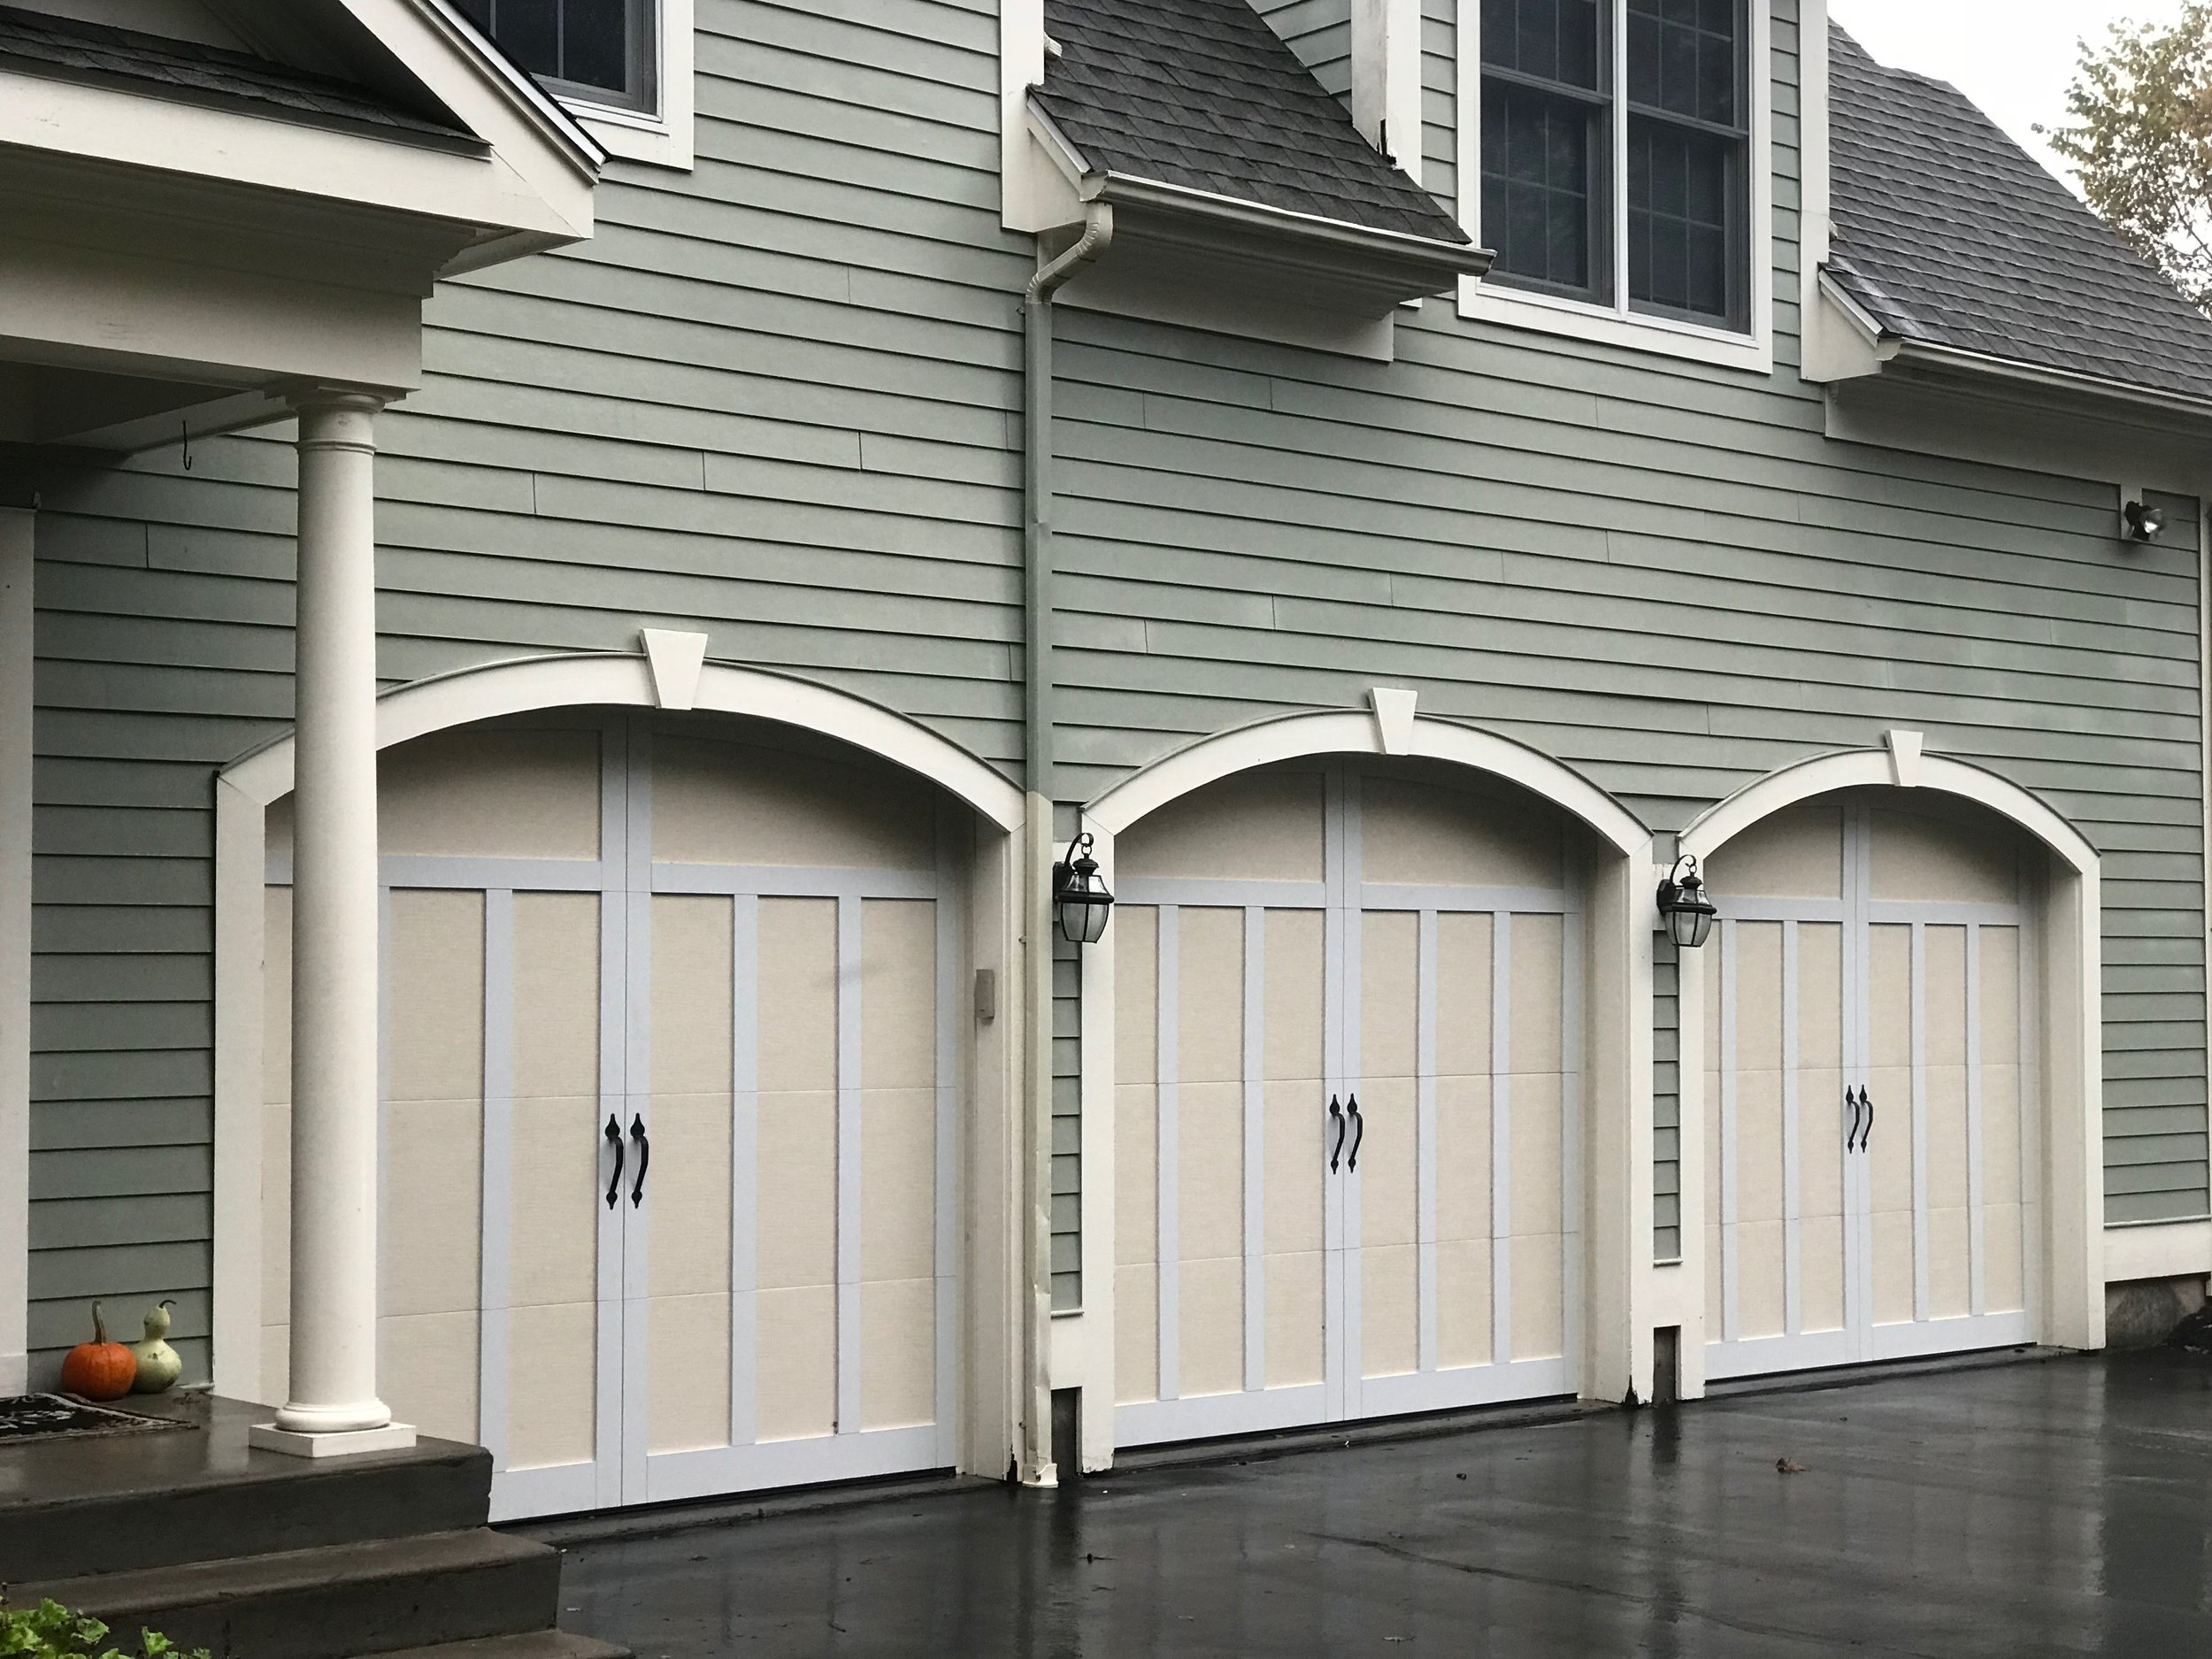 Three Door Garage - Waterbury